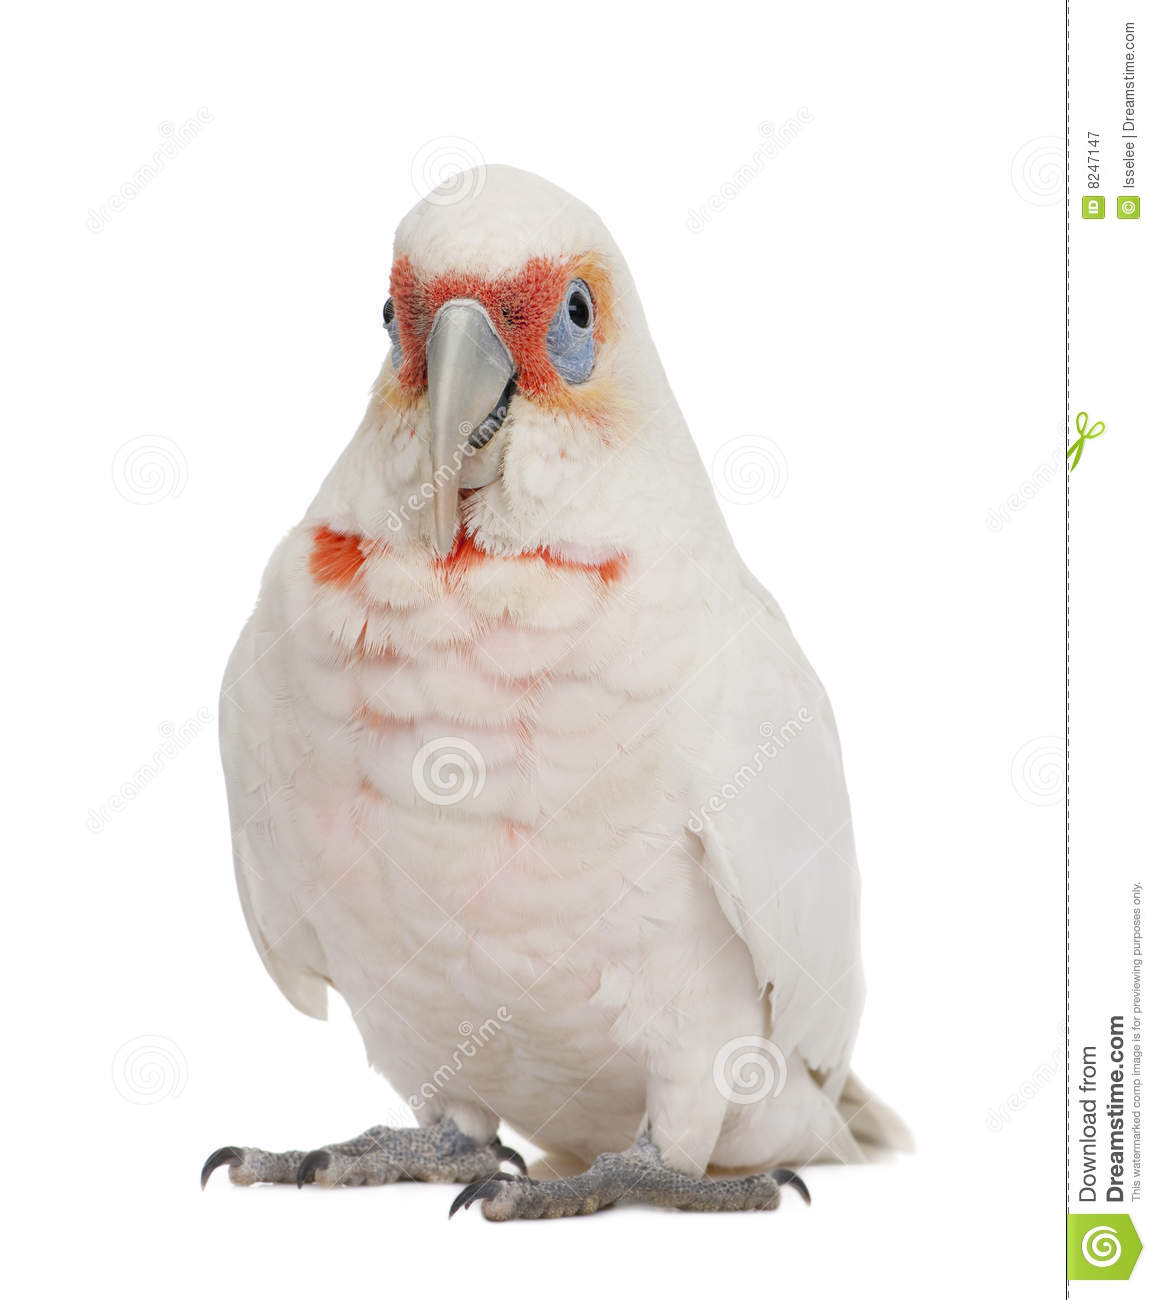 Long-billed Corella clipart #14, Download drawings